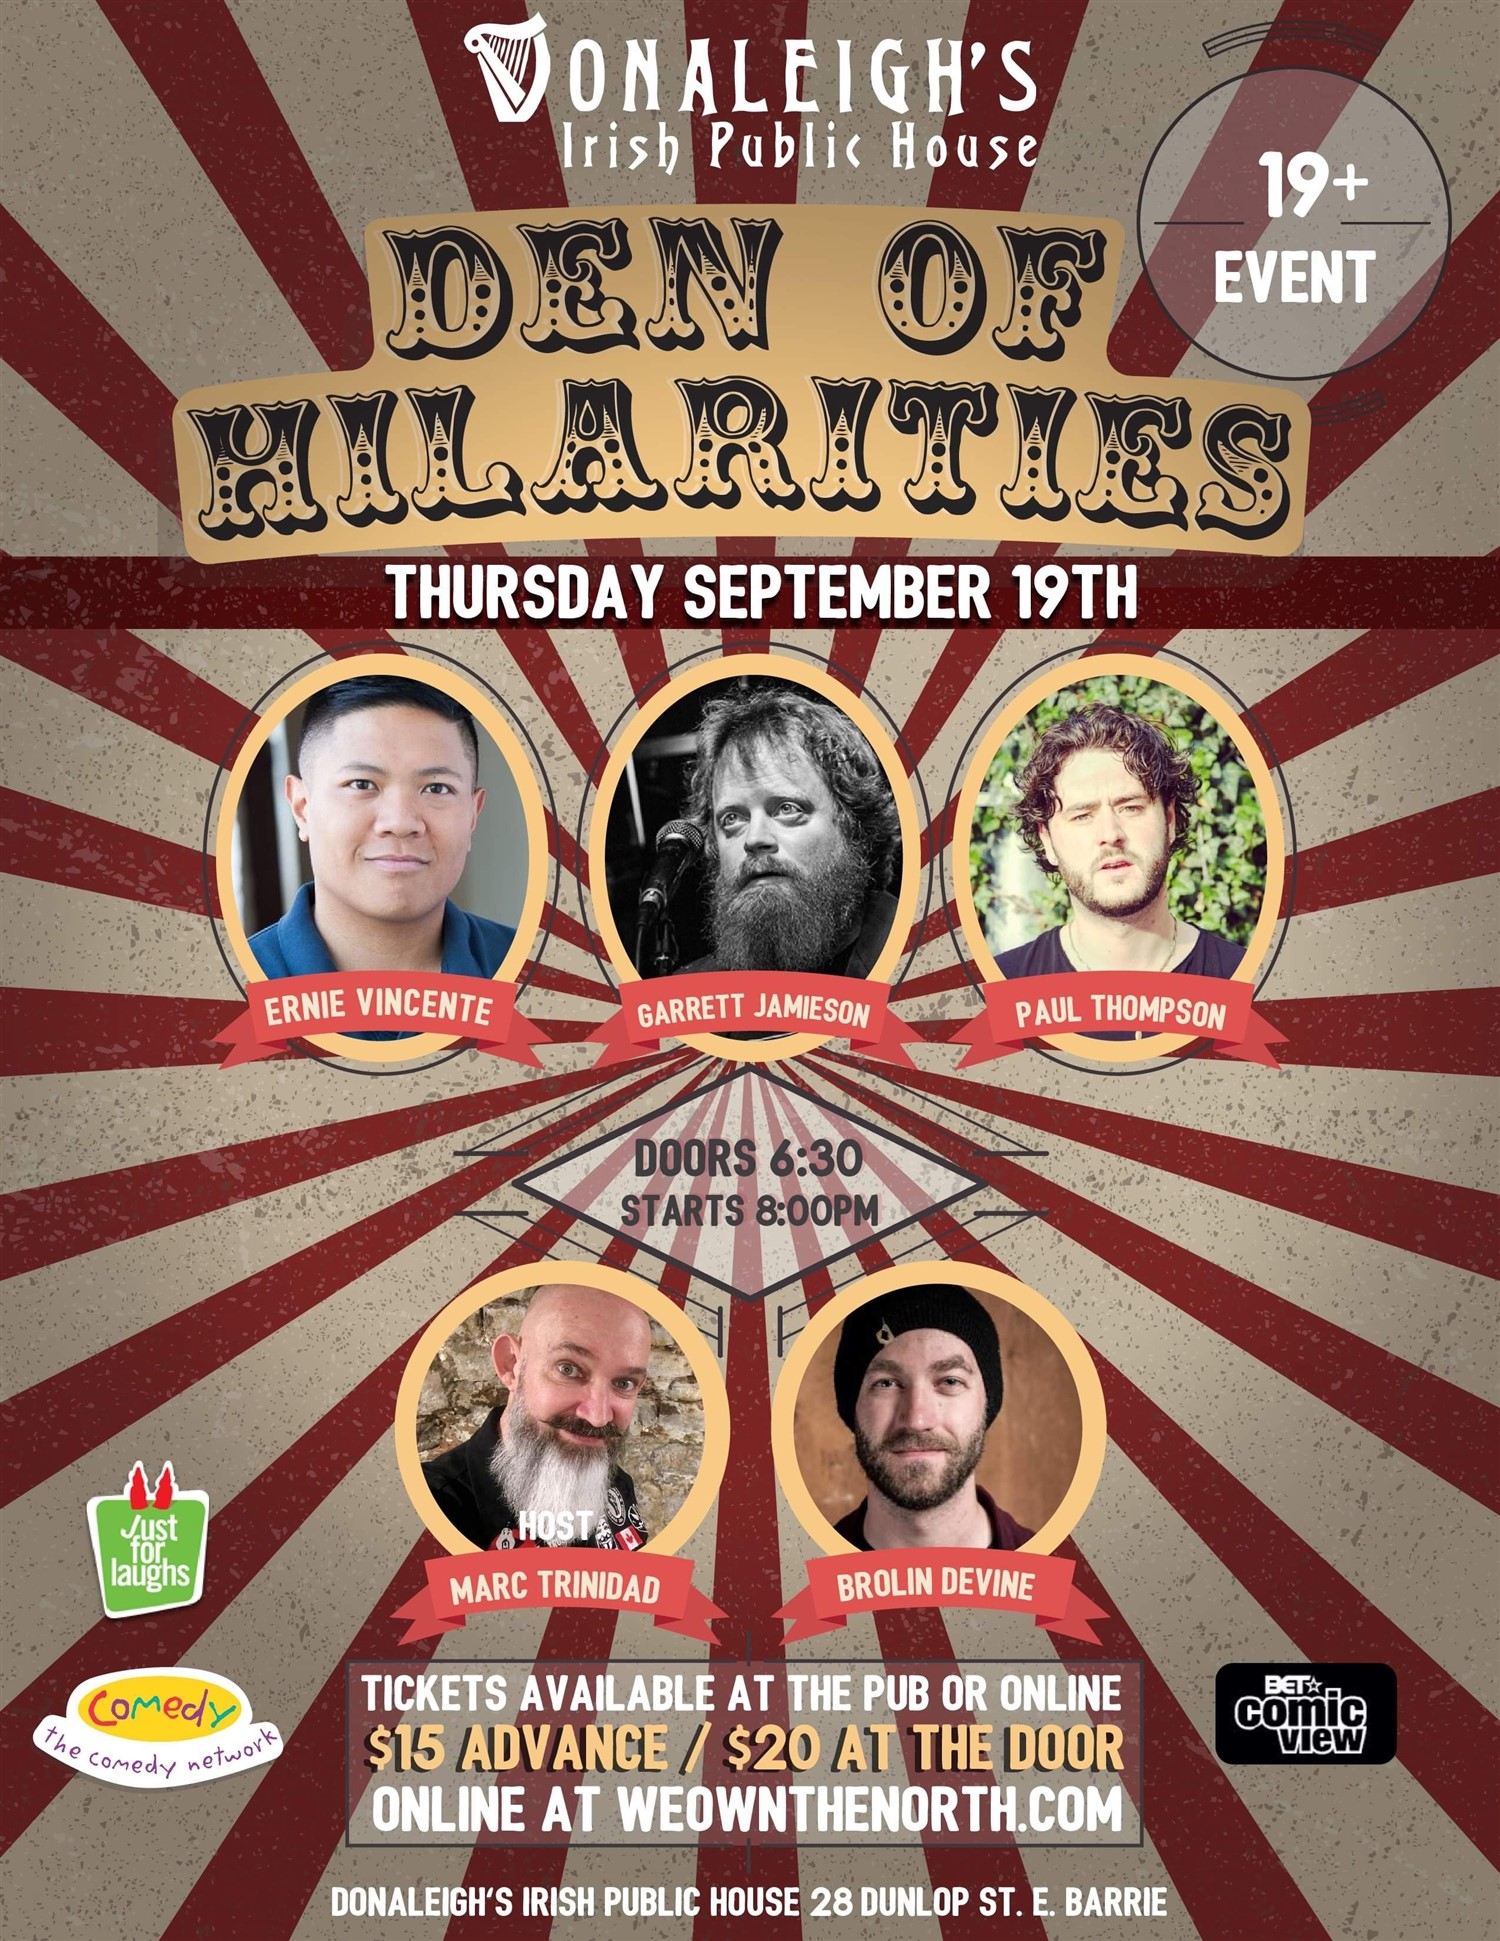 Donaleigh's Den of Hilarities Live Stand Up Comedy on Sep 19, 20:00@Donaleigh's Irish Pub - Buy tickets and Get information on Marc Trinidad Ent